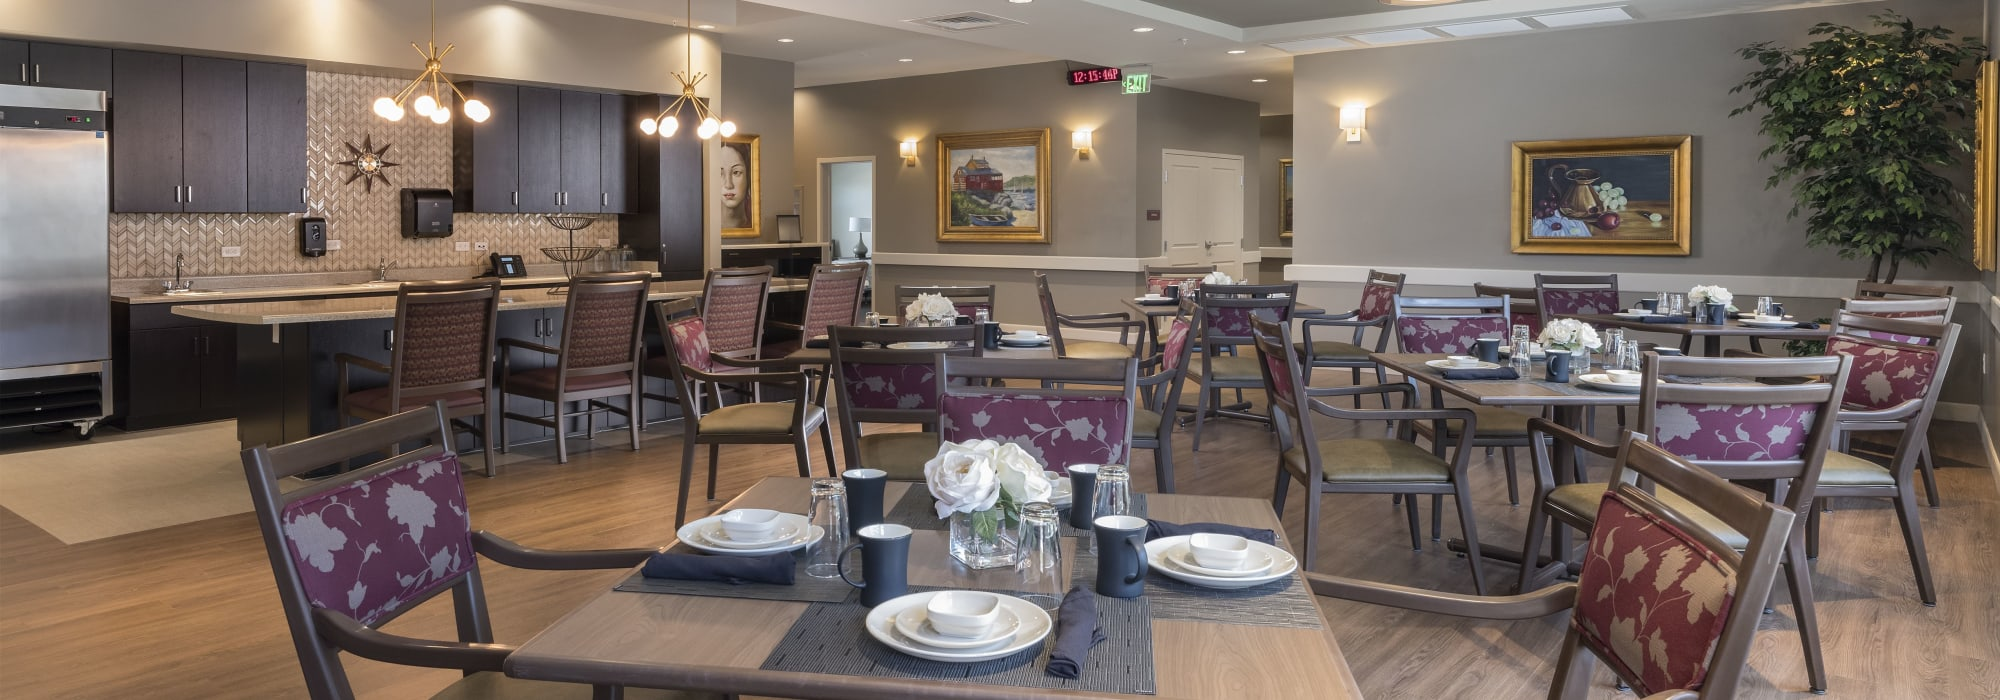 Learn about Our Communities at Avenir Senior Living in Scottsdale, Arizona.